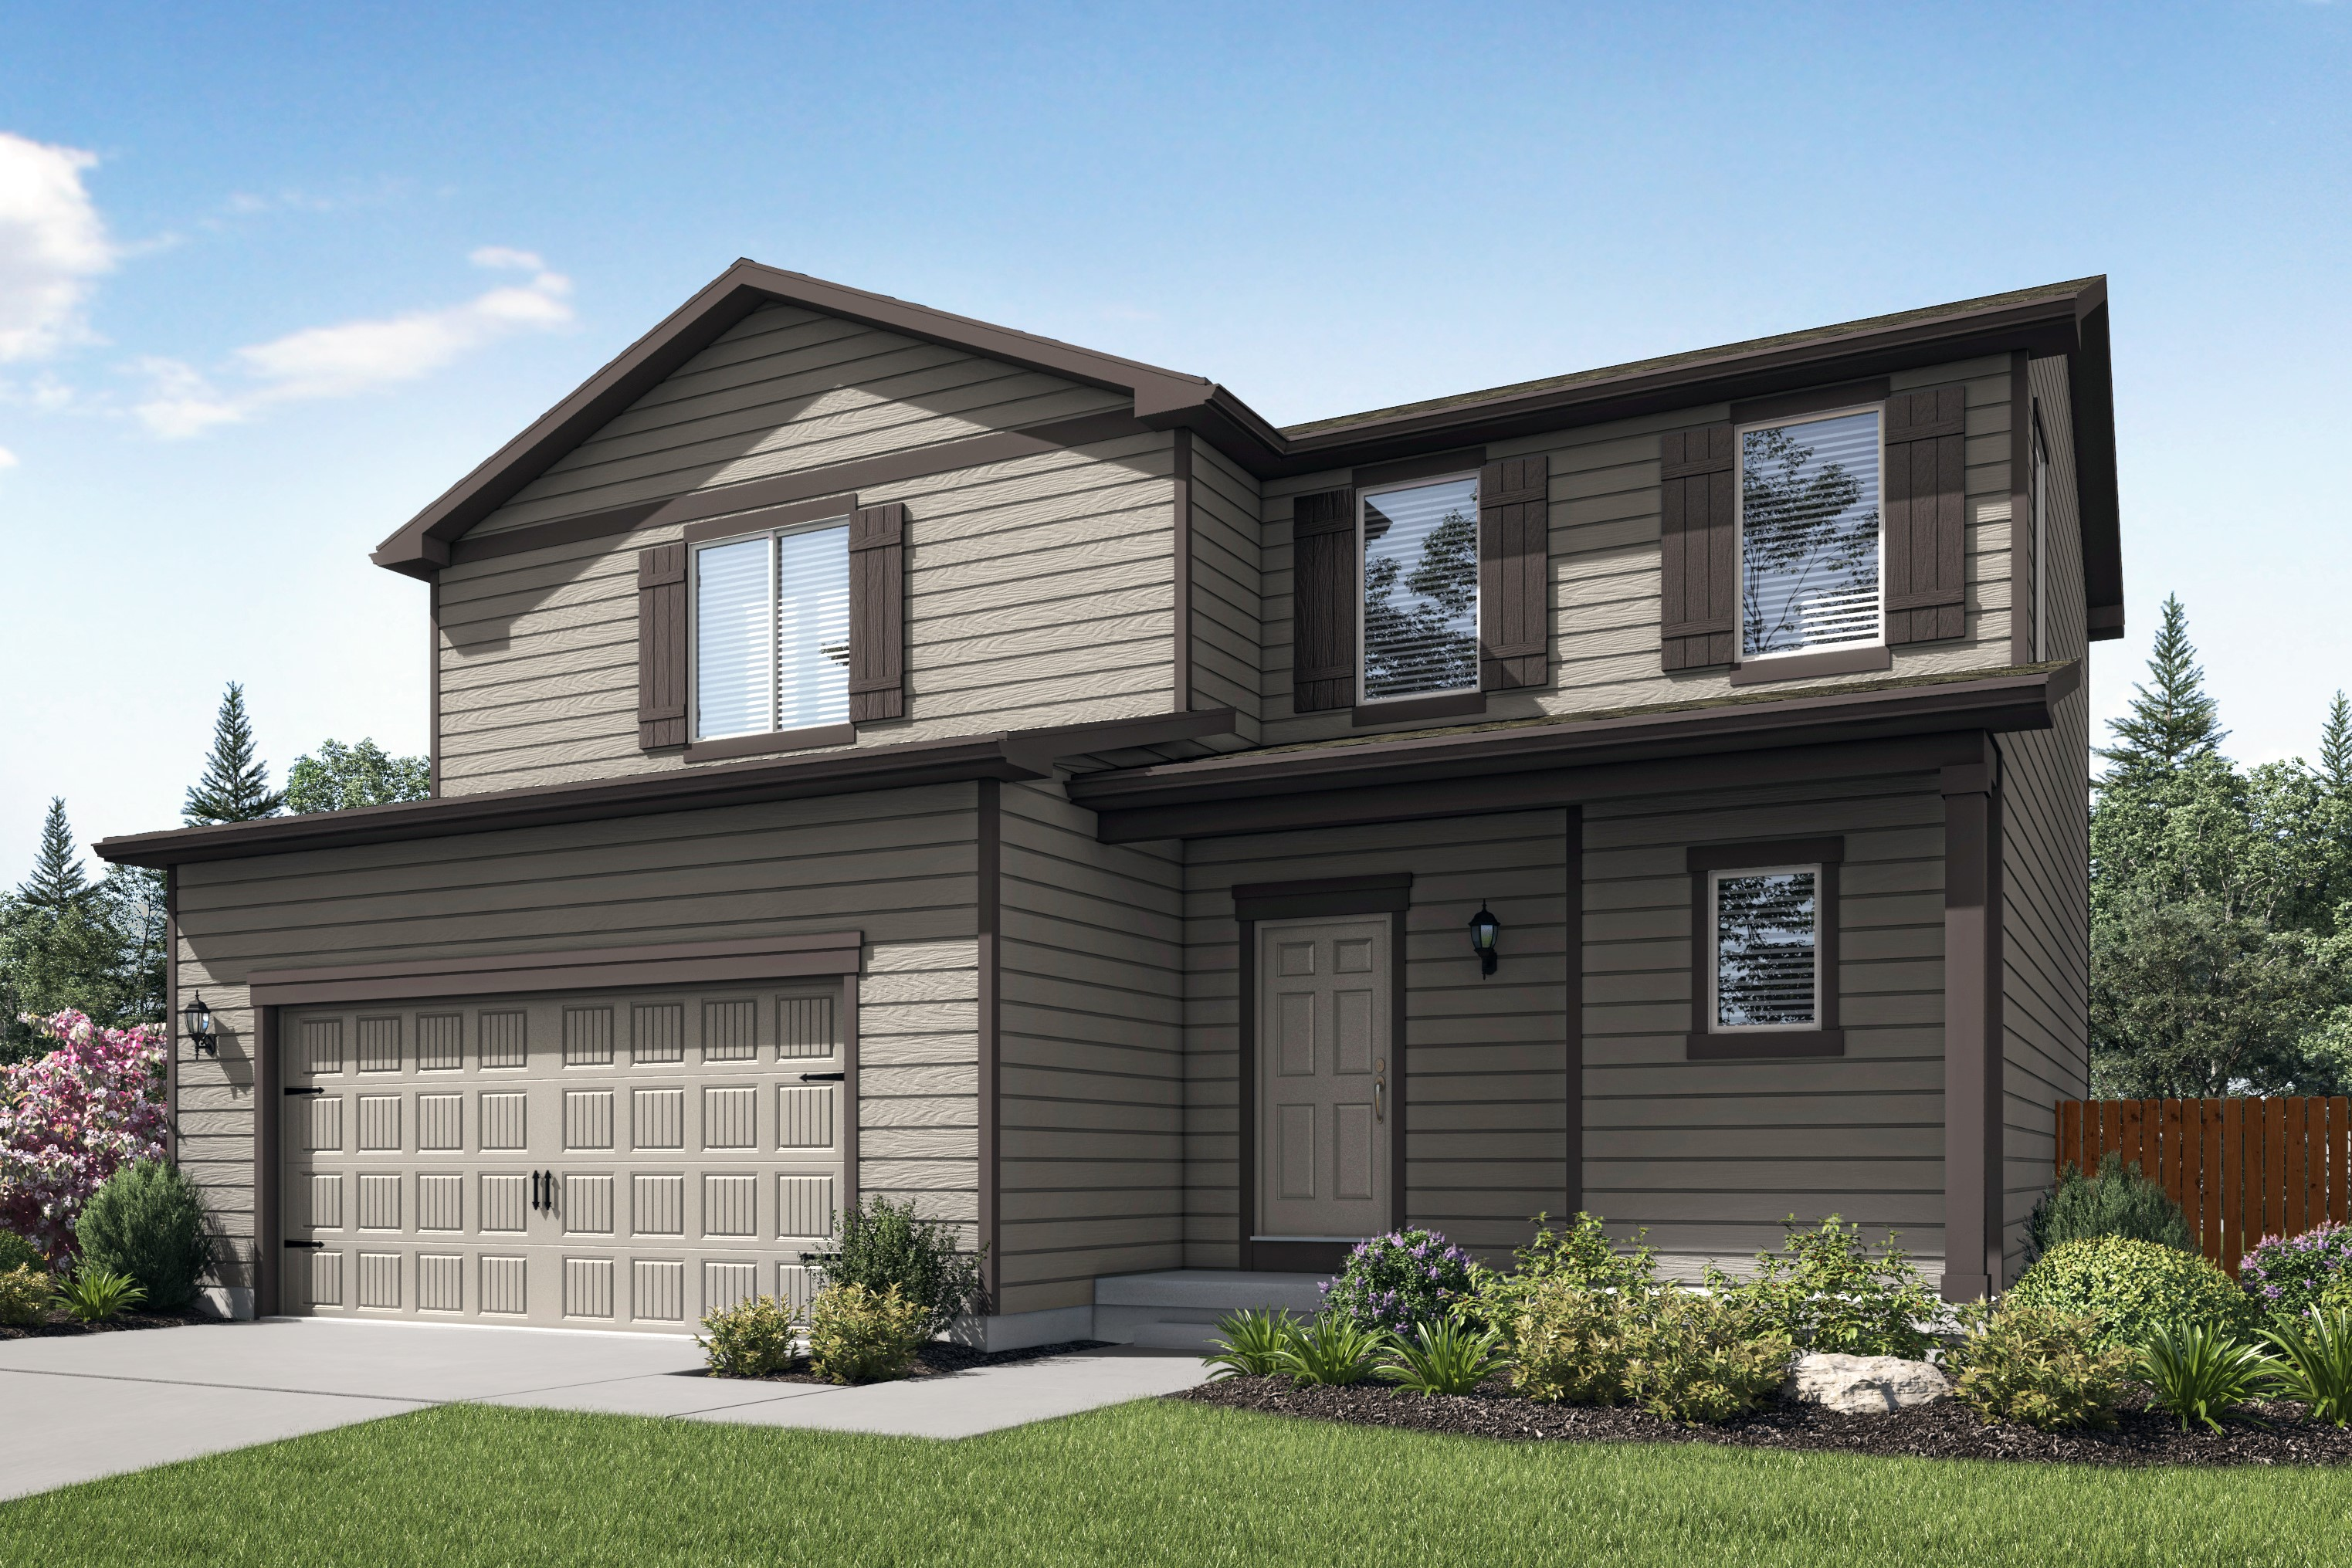 The Mesa Verde Plan by LGI Homes at Evans Place.